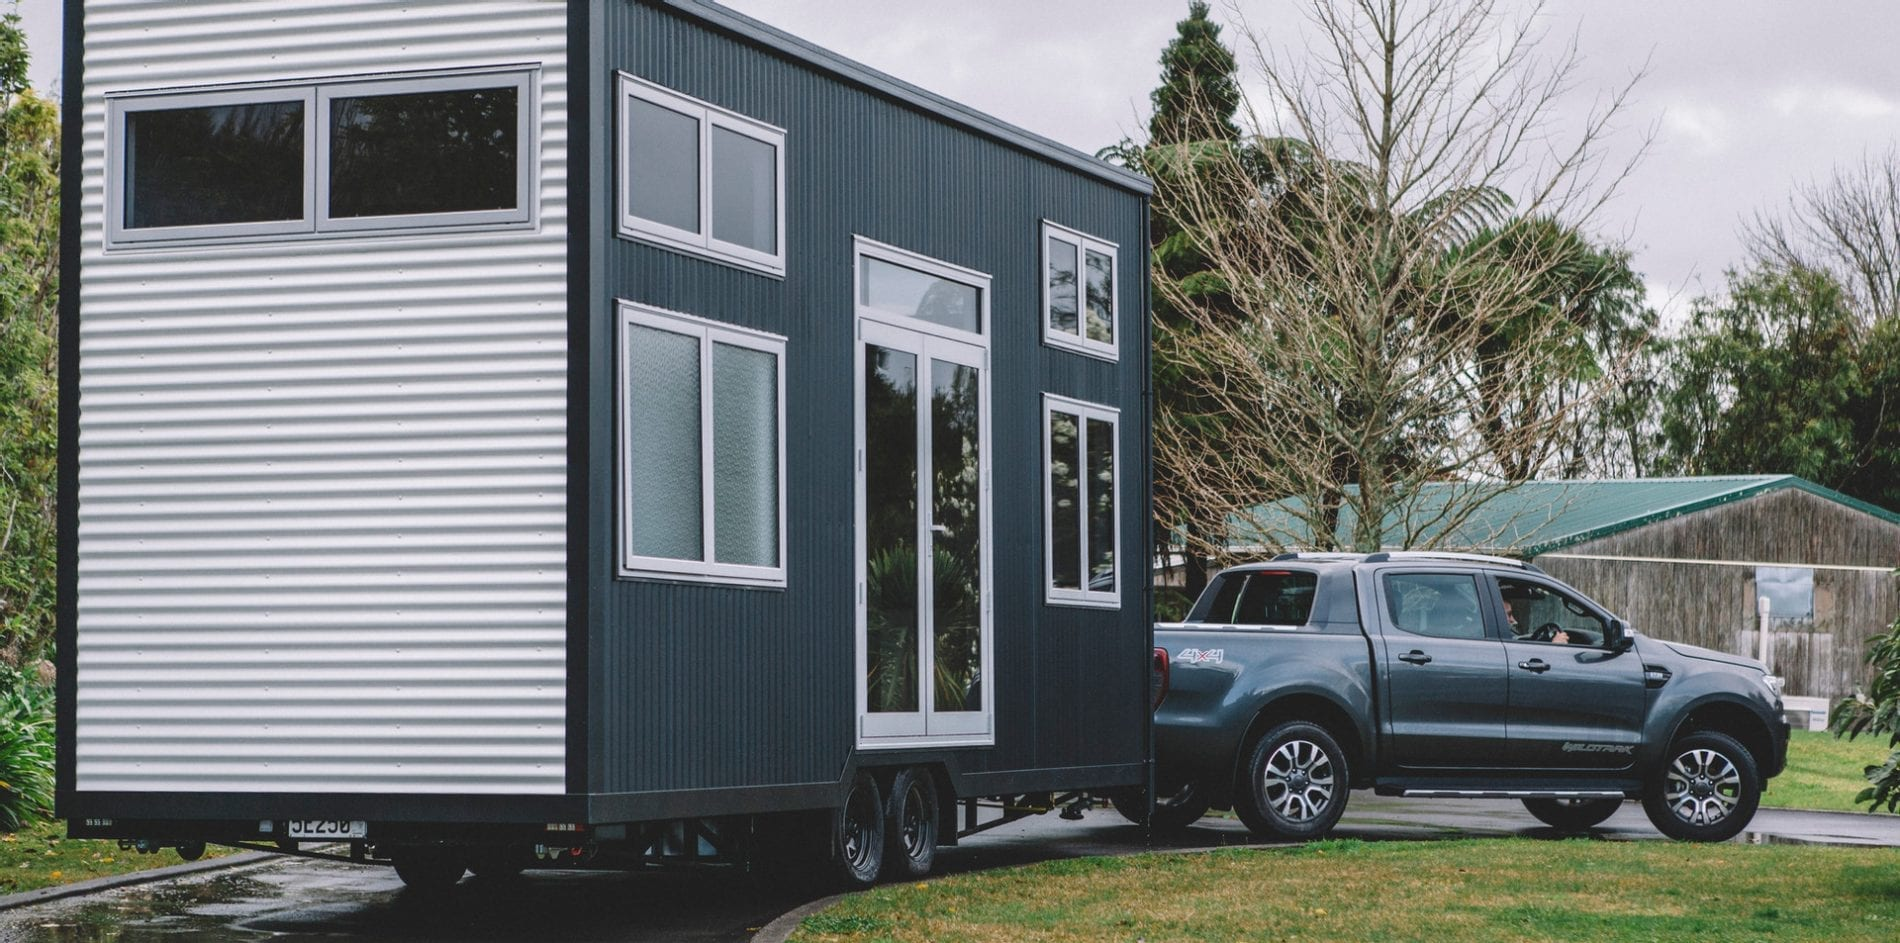 Tiny Home Towing